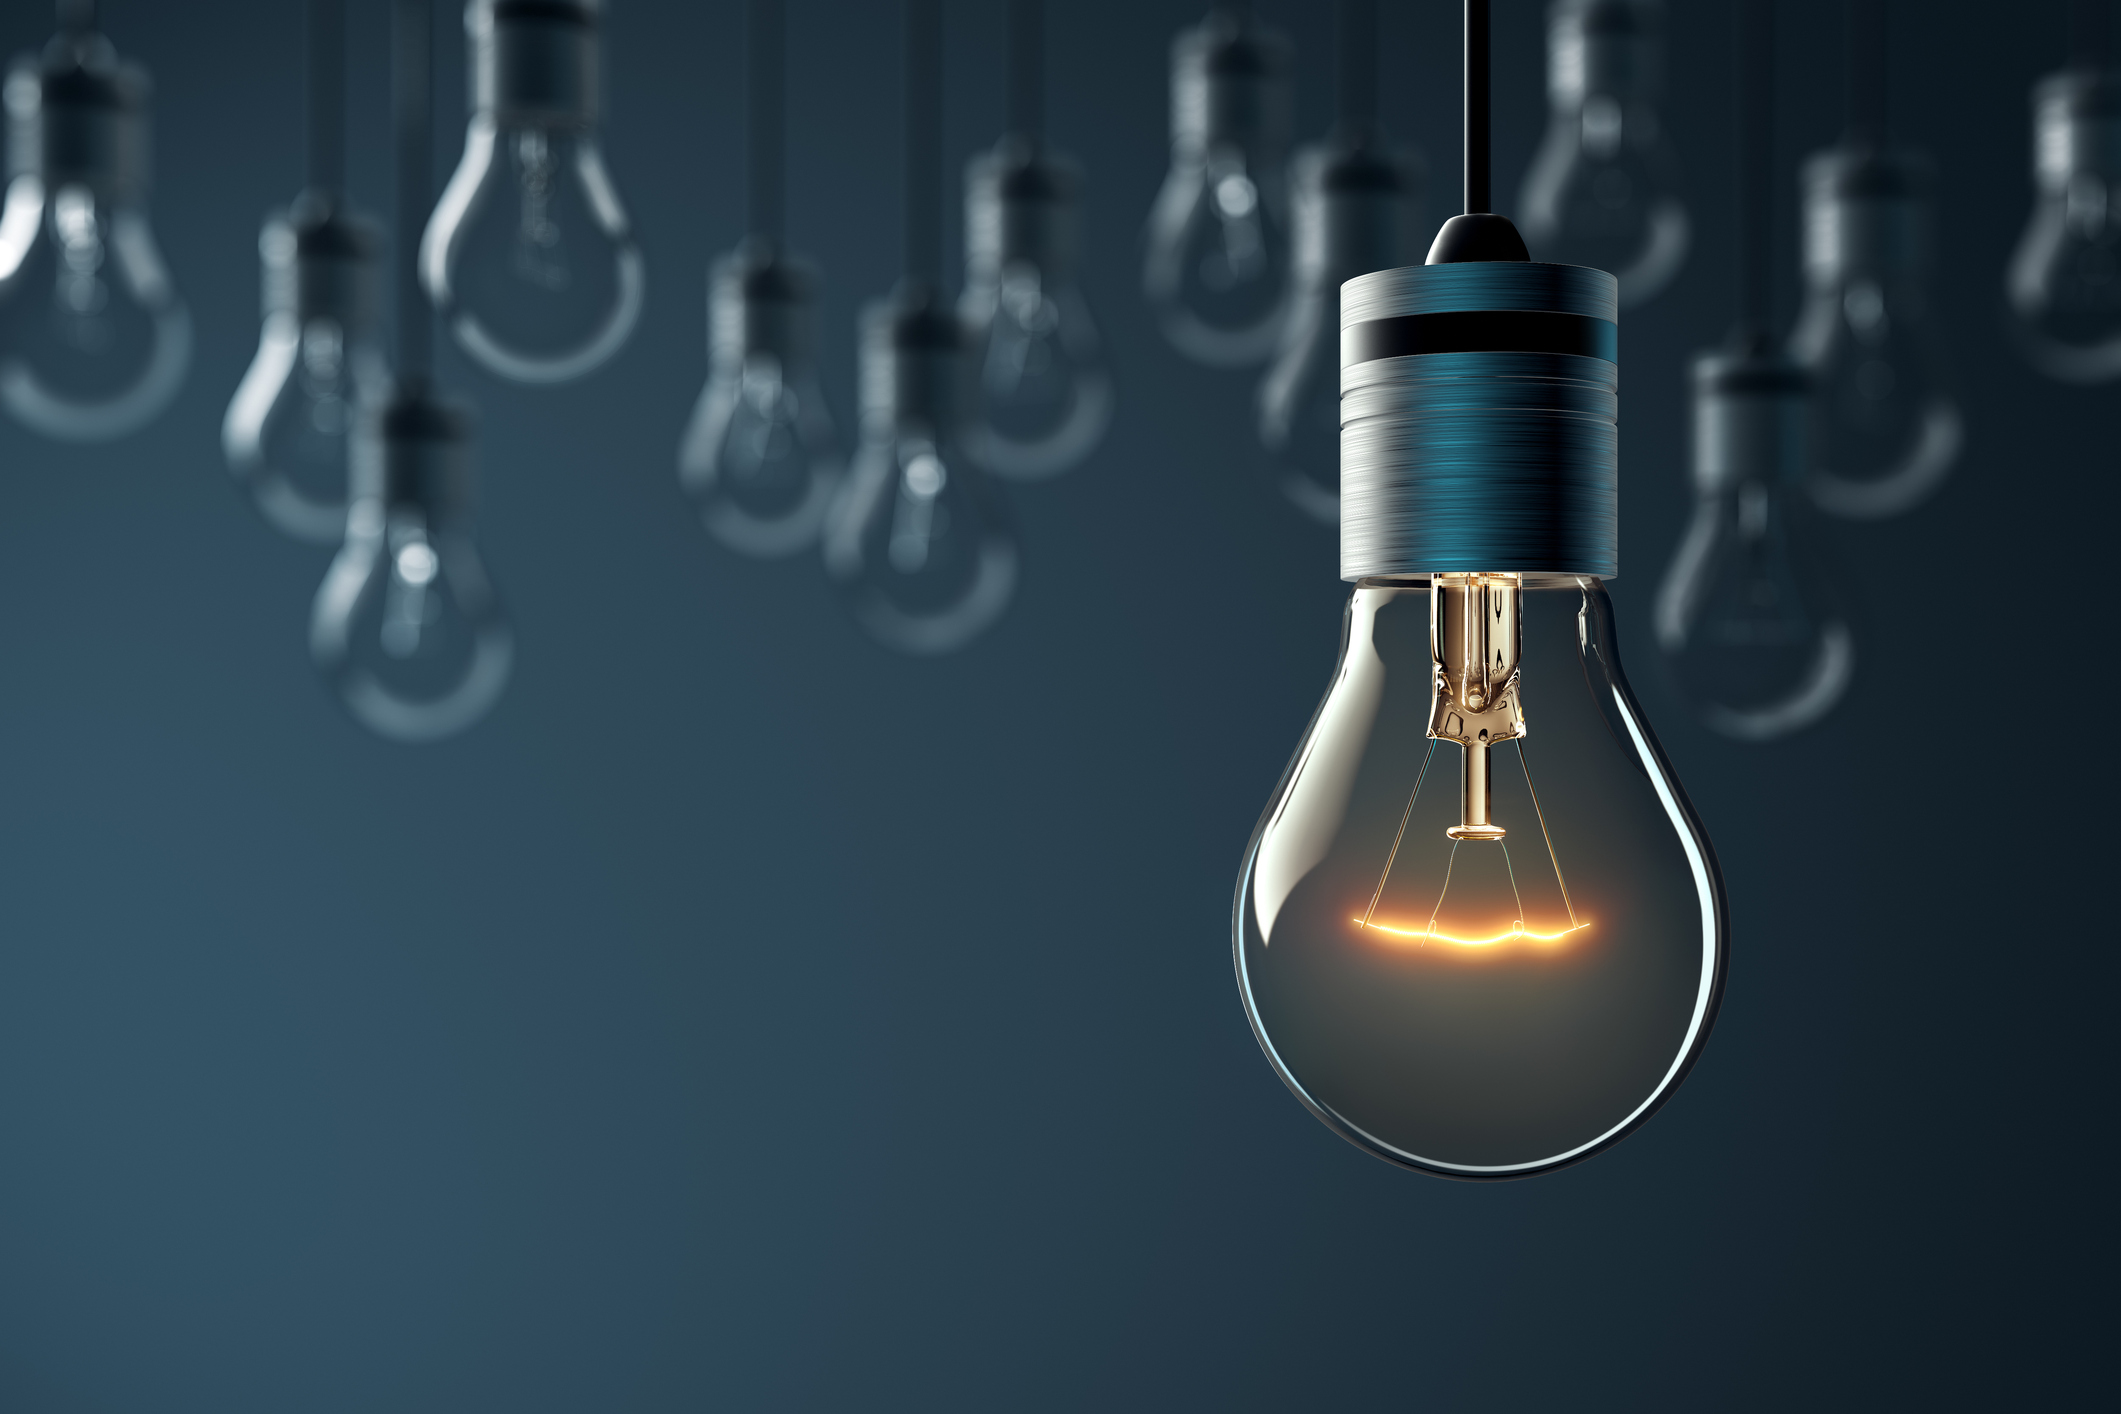 How to Come Up With Business Ideas to Test